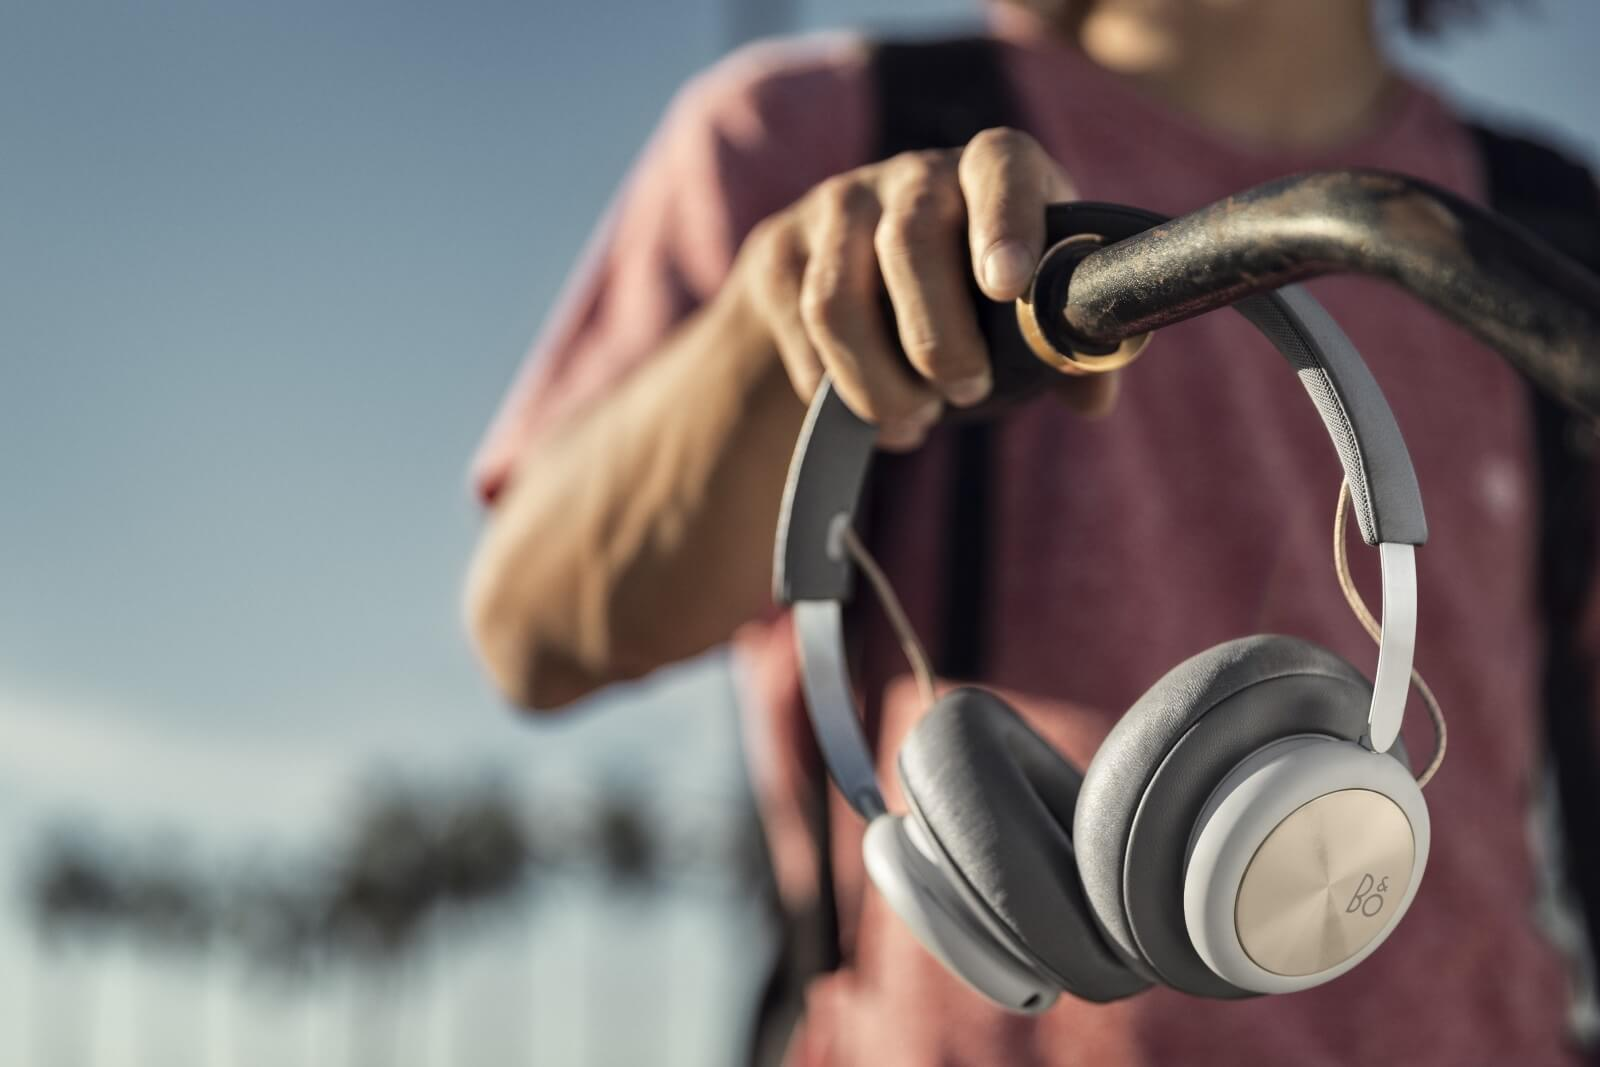 BeoPlay H4 - Bluetoth Over-Ear headphones in minimalistic design